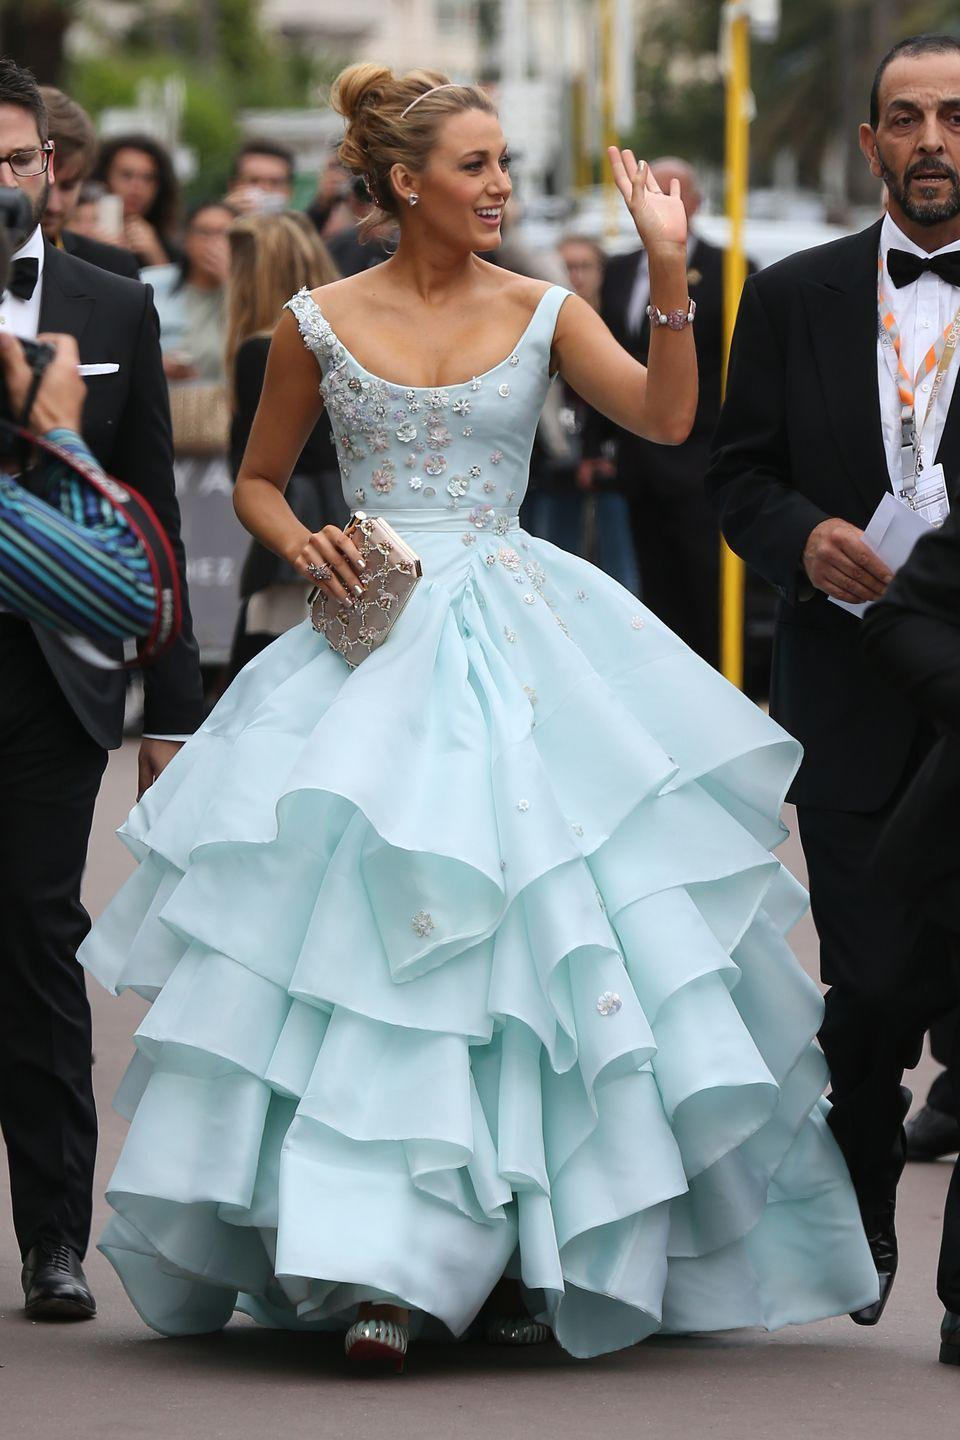 <p>Blake Lively drew many comparisons to Cinderella when she wore this light-blue gown designed by Vivienne Westwood to the premiere of <em>Slack Bay</em> at the Cannes Film Festival in 2016.</p>